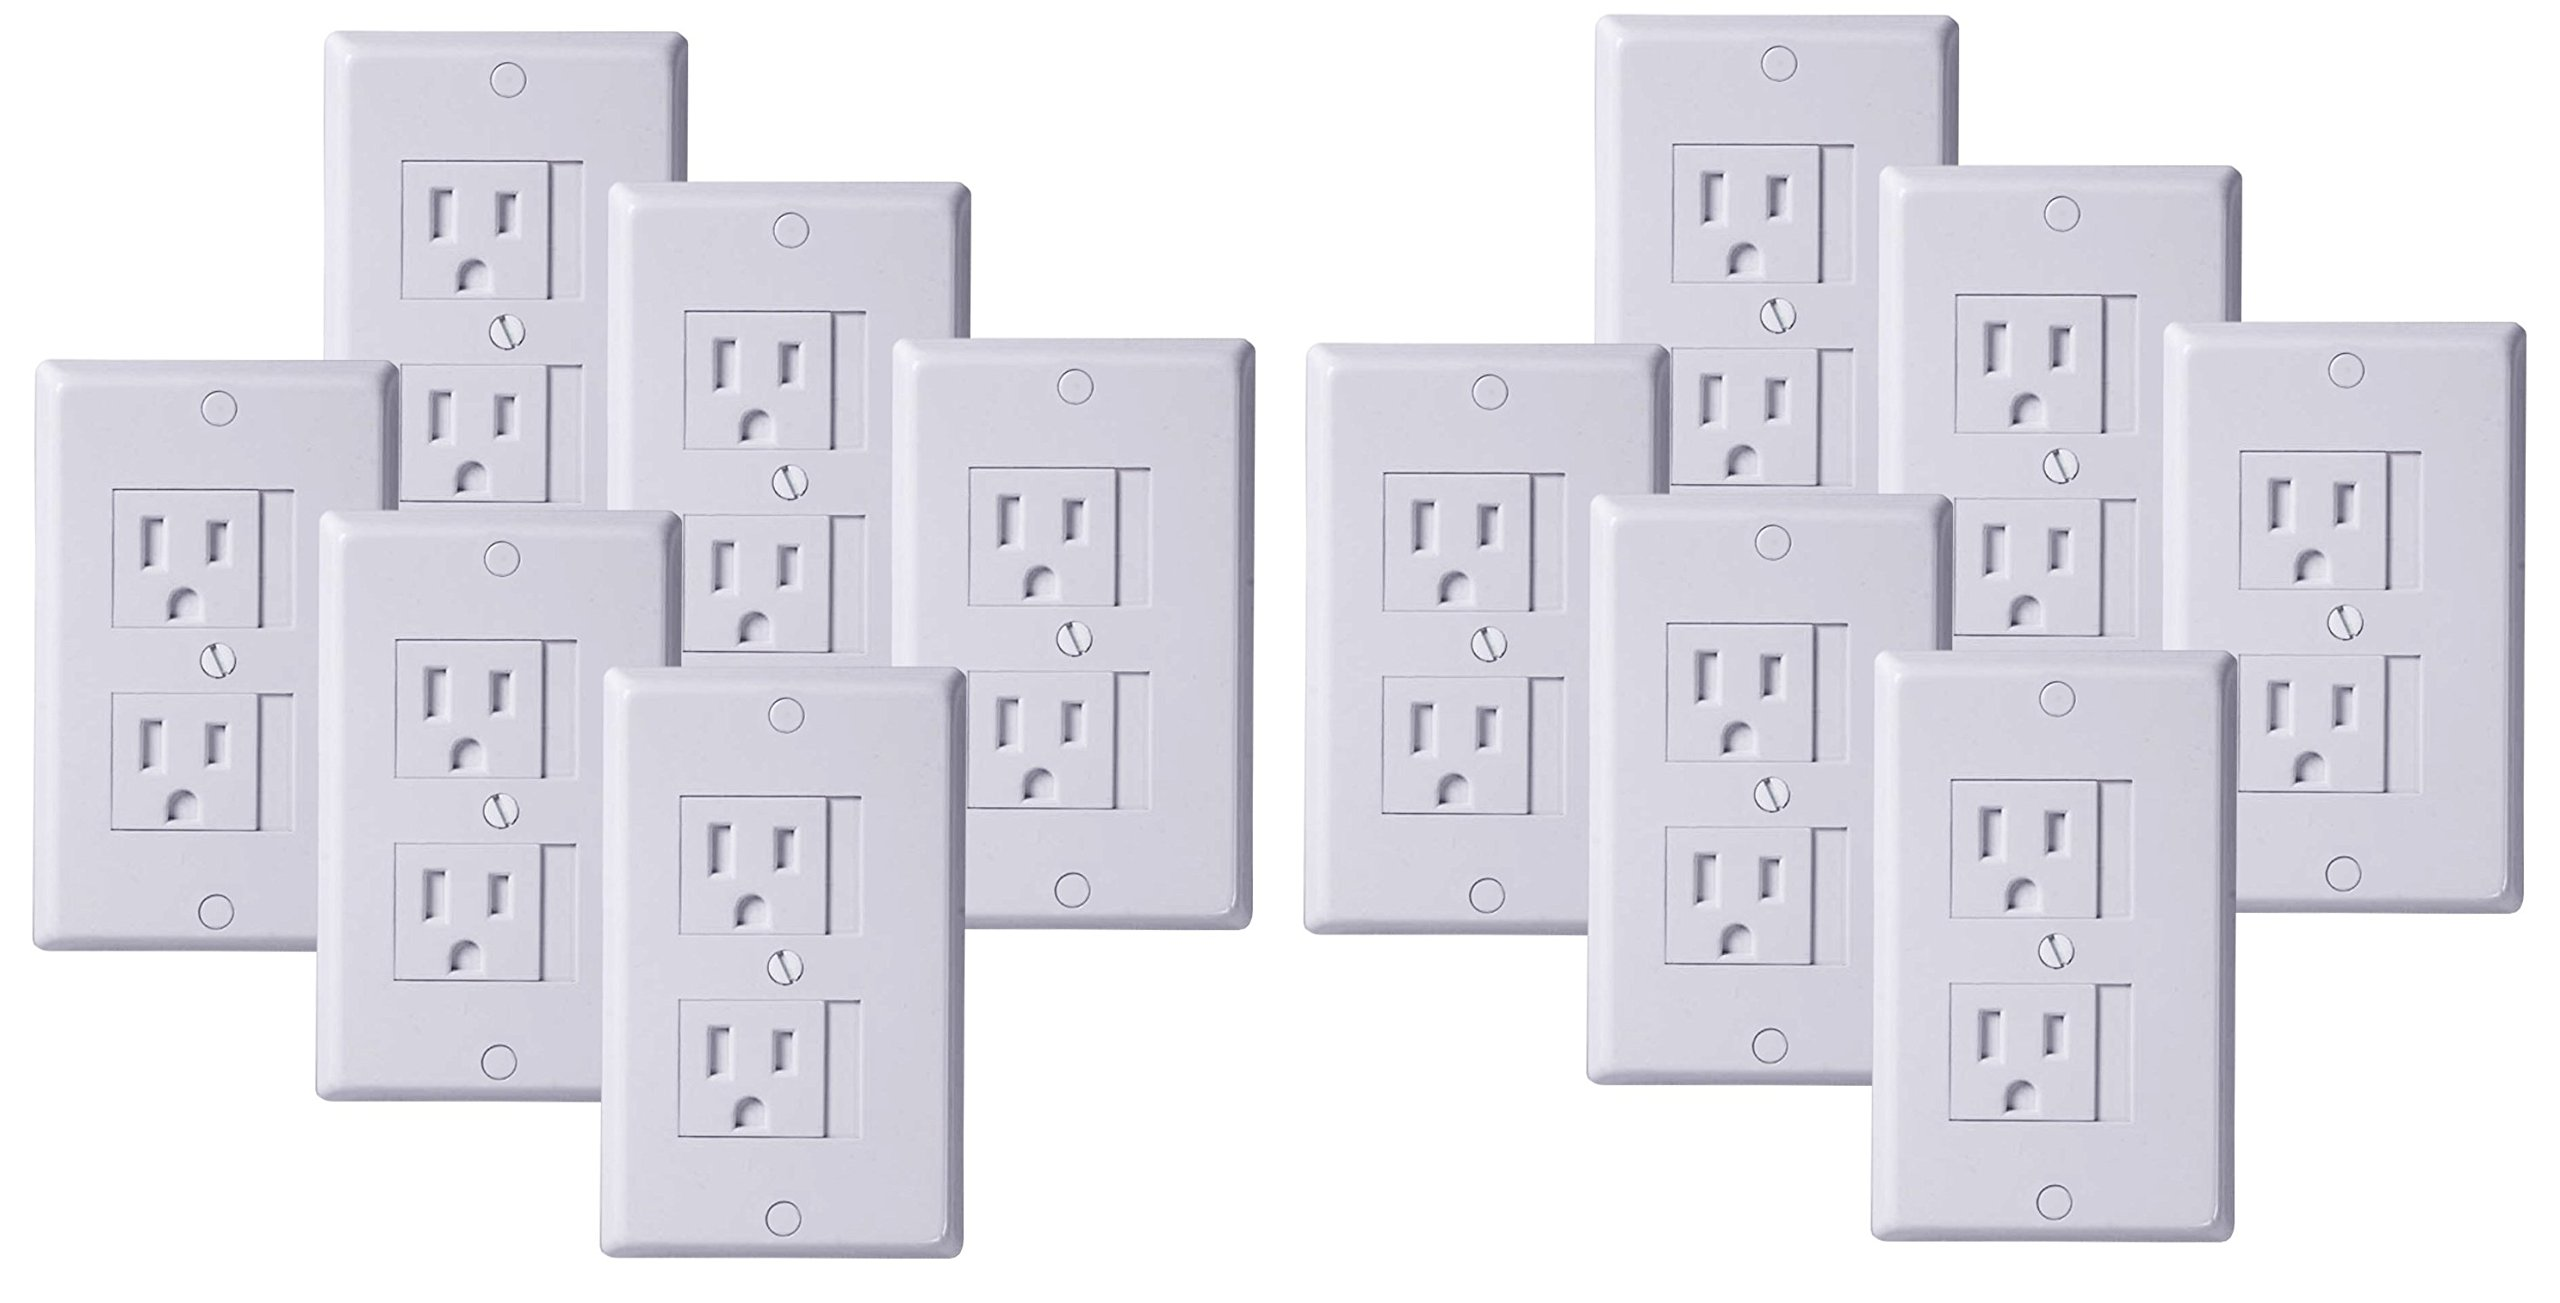 KidCo Universal Outlet Cover 12 Count - White by KidCo (Image #1)